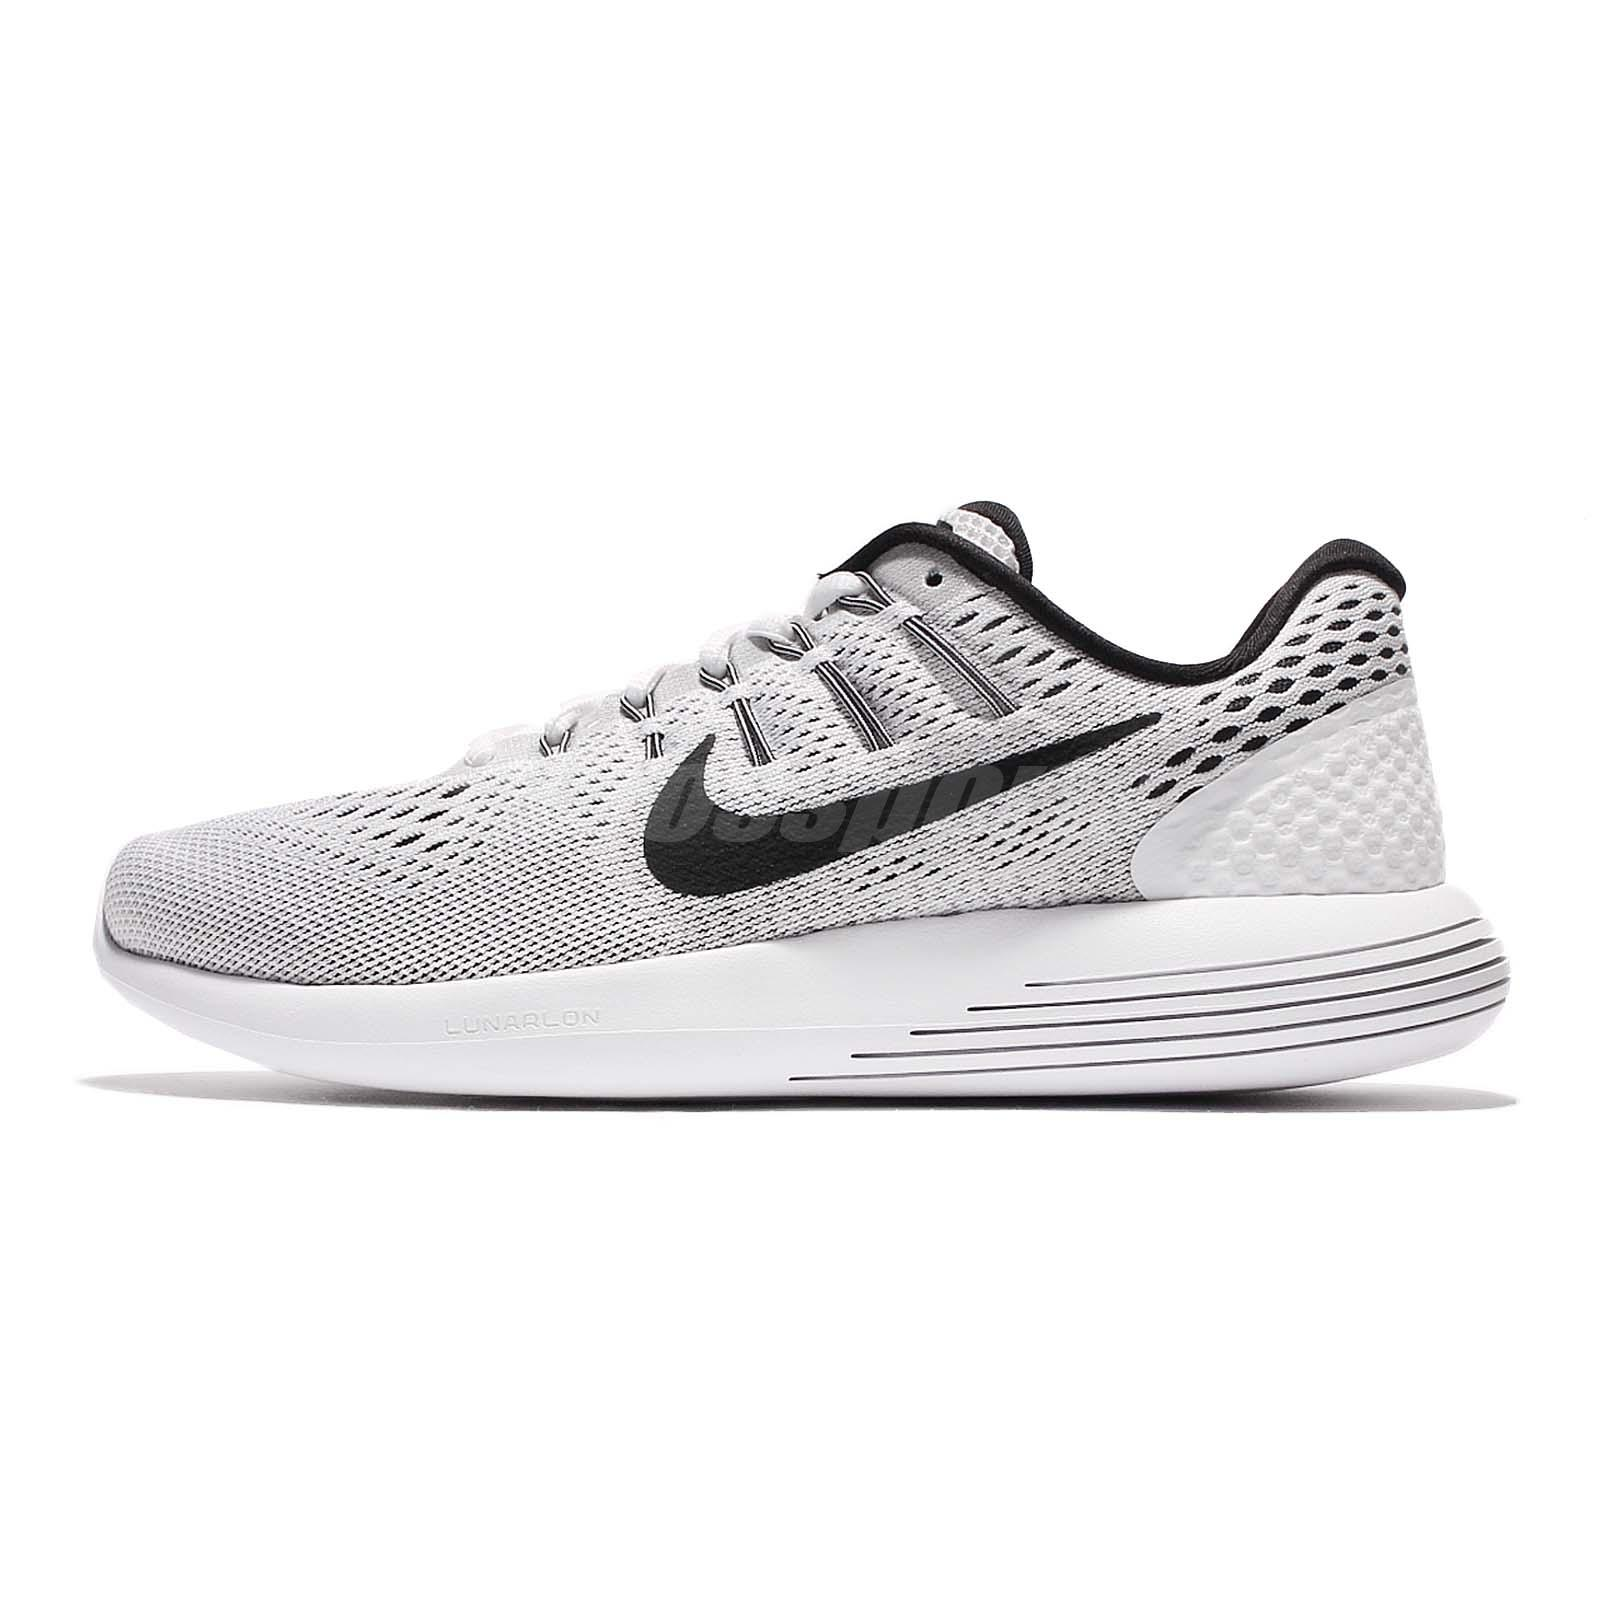 Recuperar puesto técnico  nike lunarlon grey Cheaper Than Retail Price> Buy Clothing, Accessories and  lifestyle products for women & men -